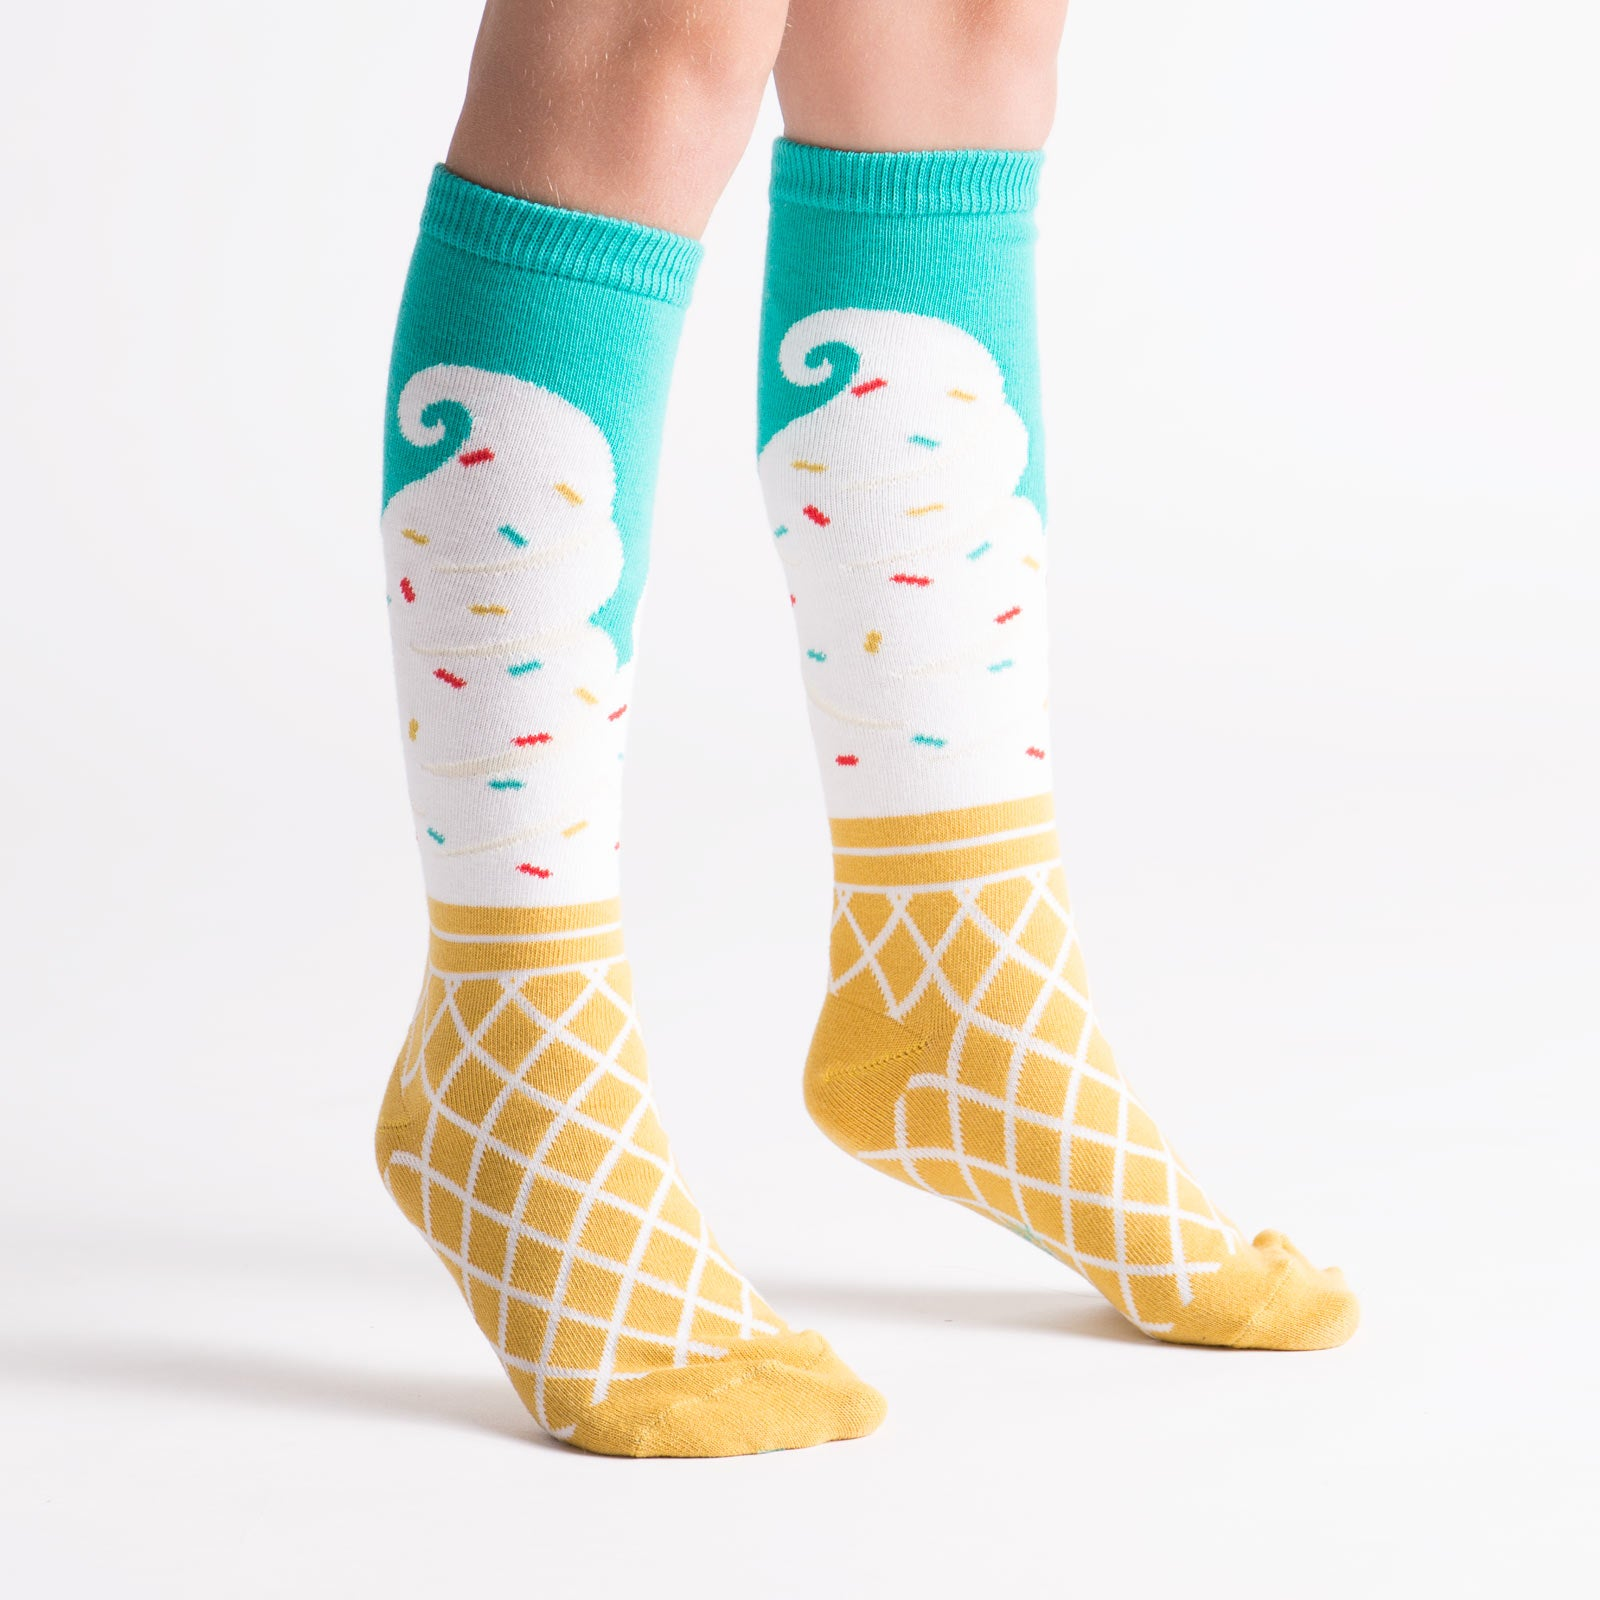 These kids' knee socks with ice cream cones are a sweet way to kick and lick!